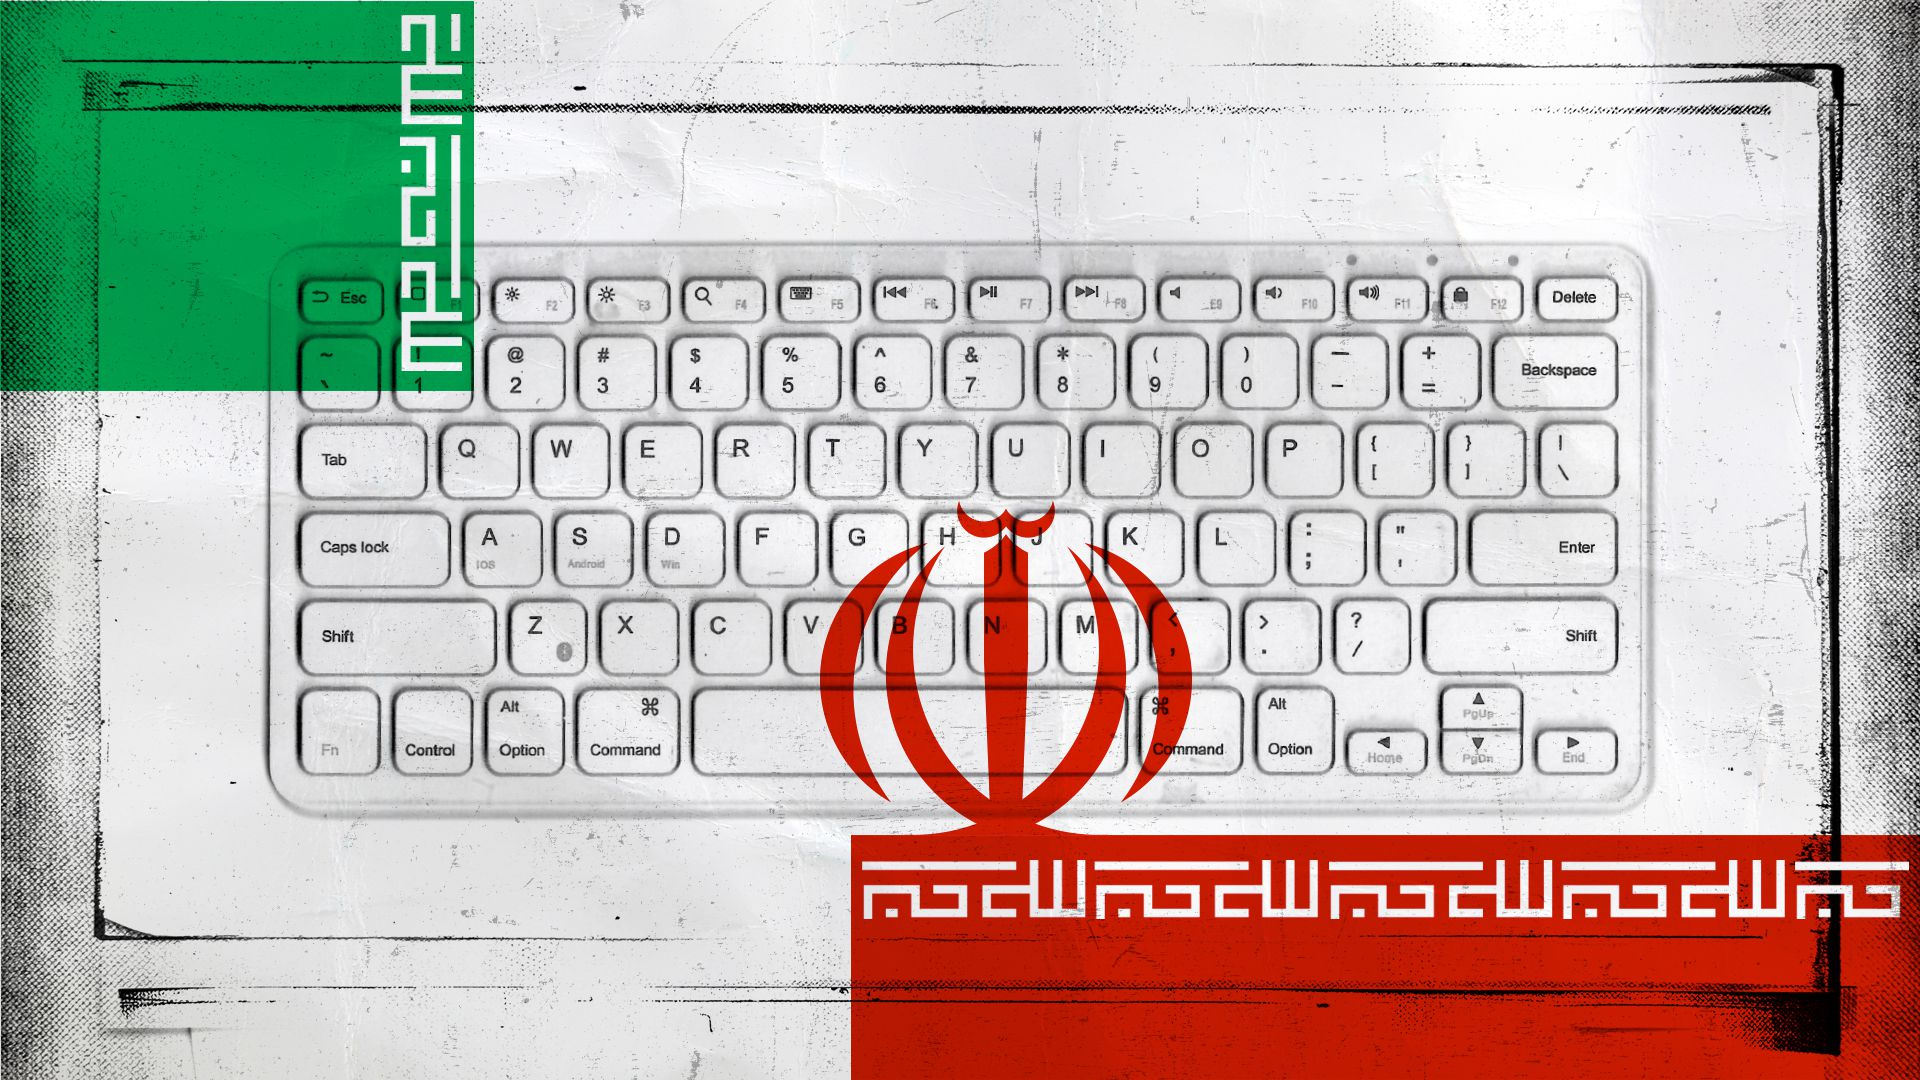 Illustration of a photocopied image of a keyboard with elements of the Iranian flag overlaid.